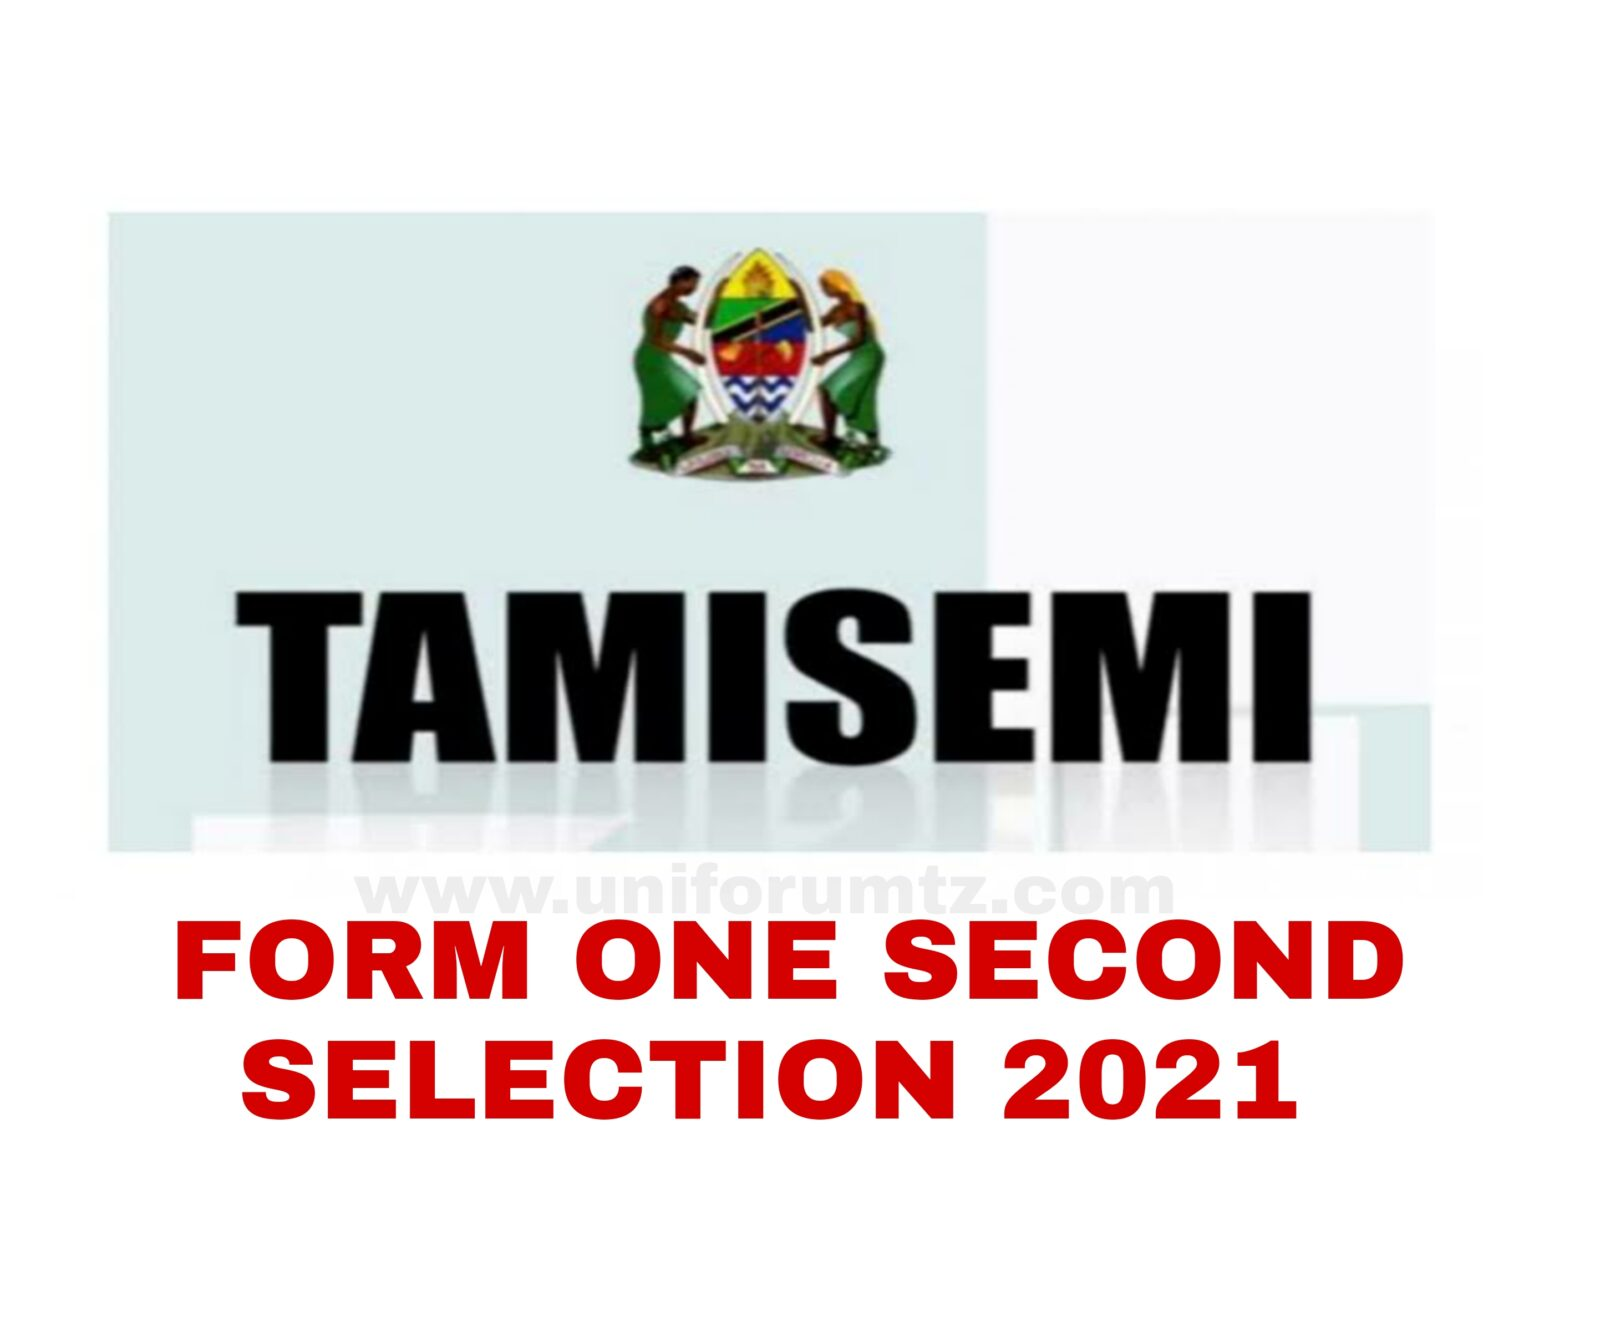 Form One Second Selection 2021 Tanzania